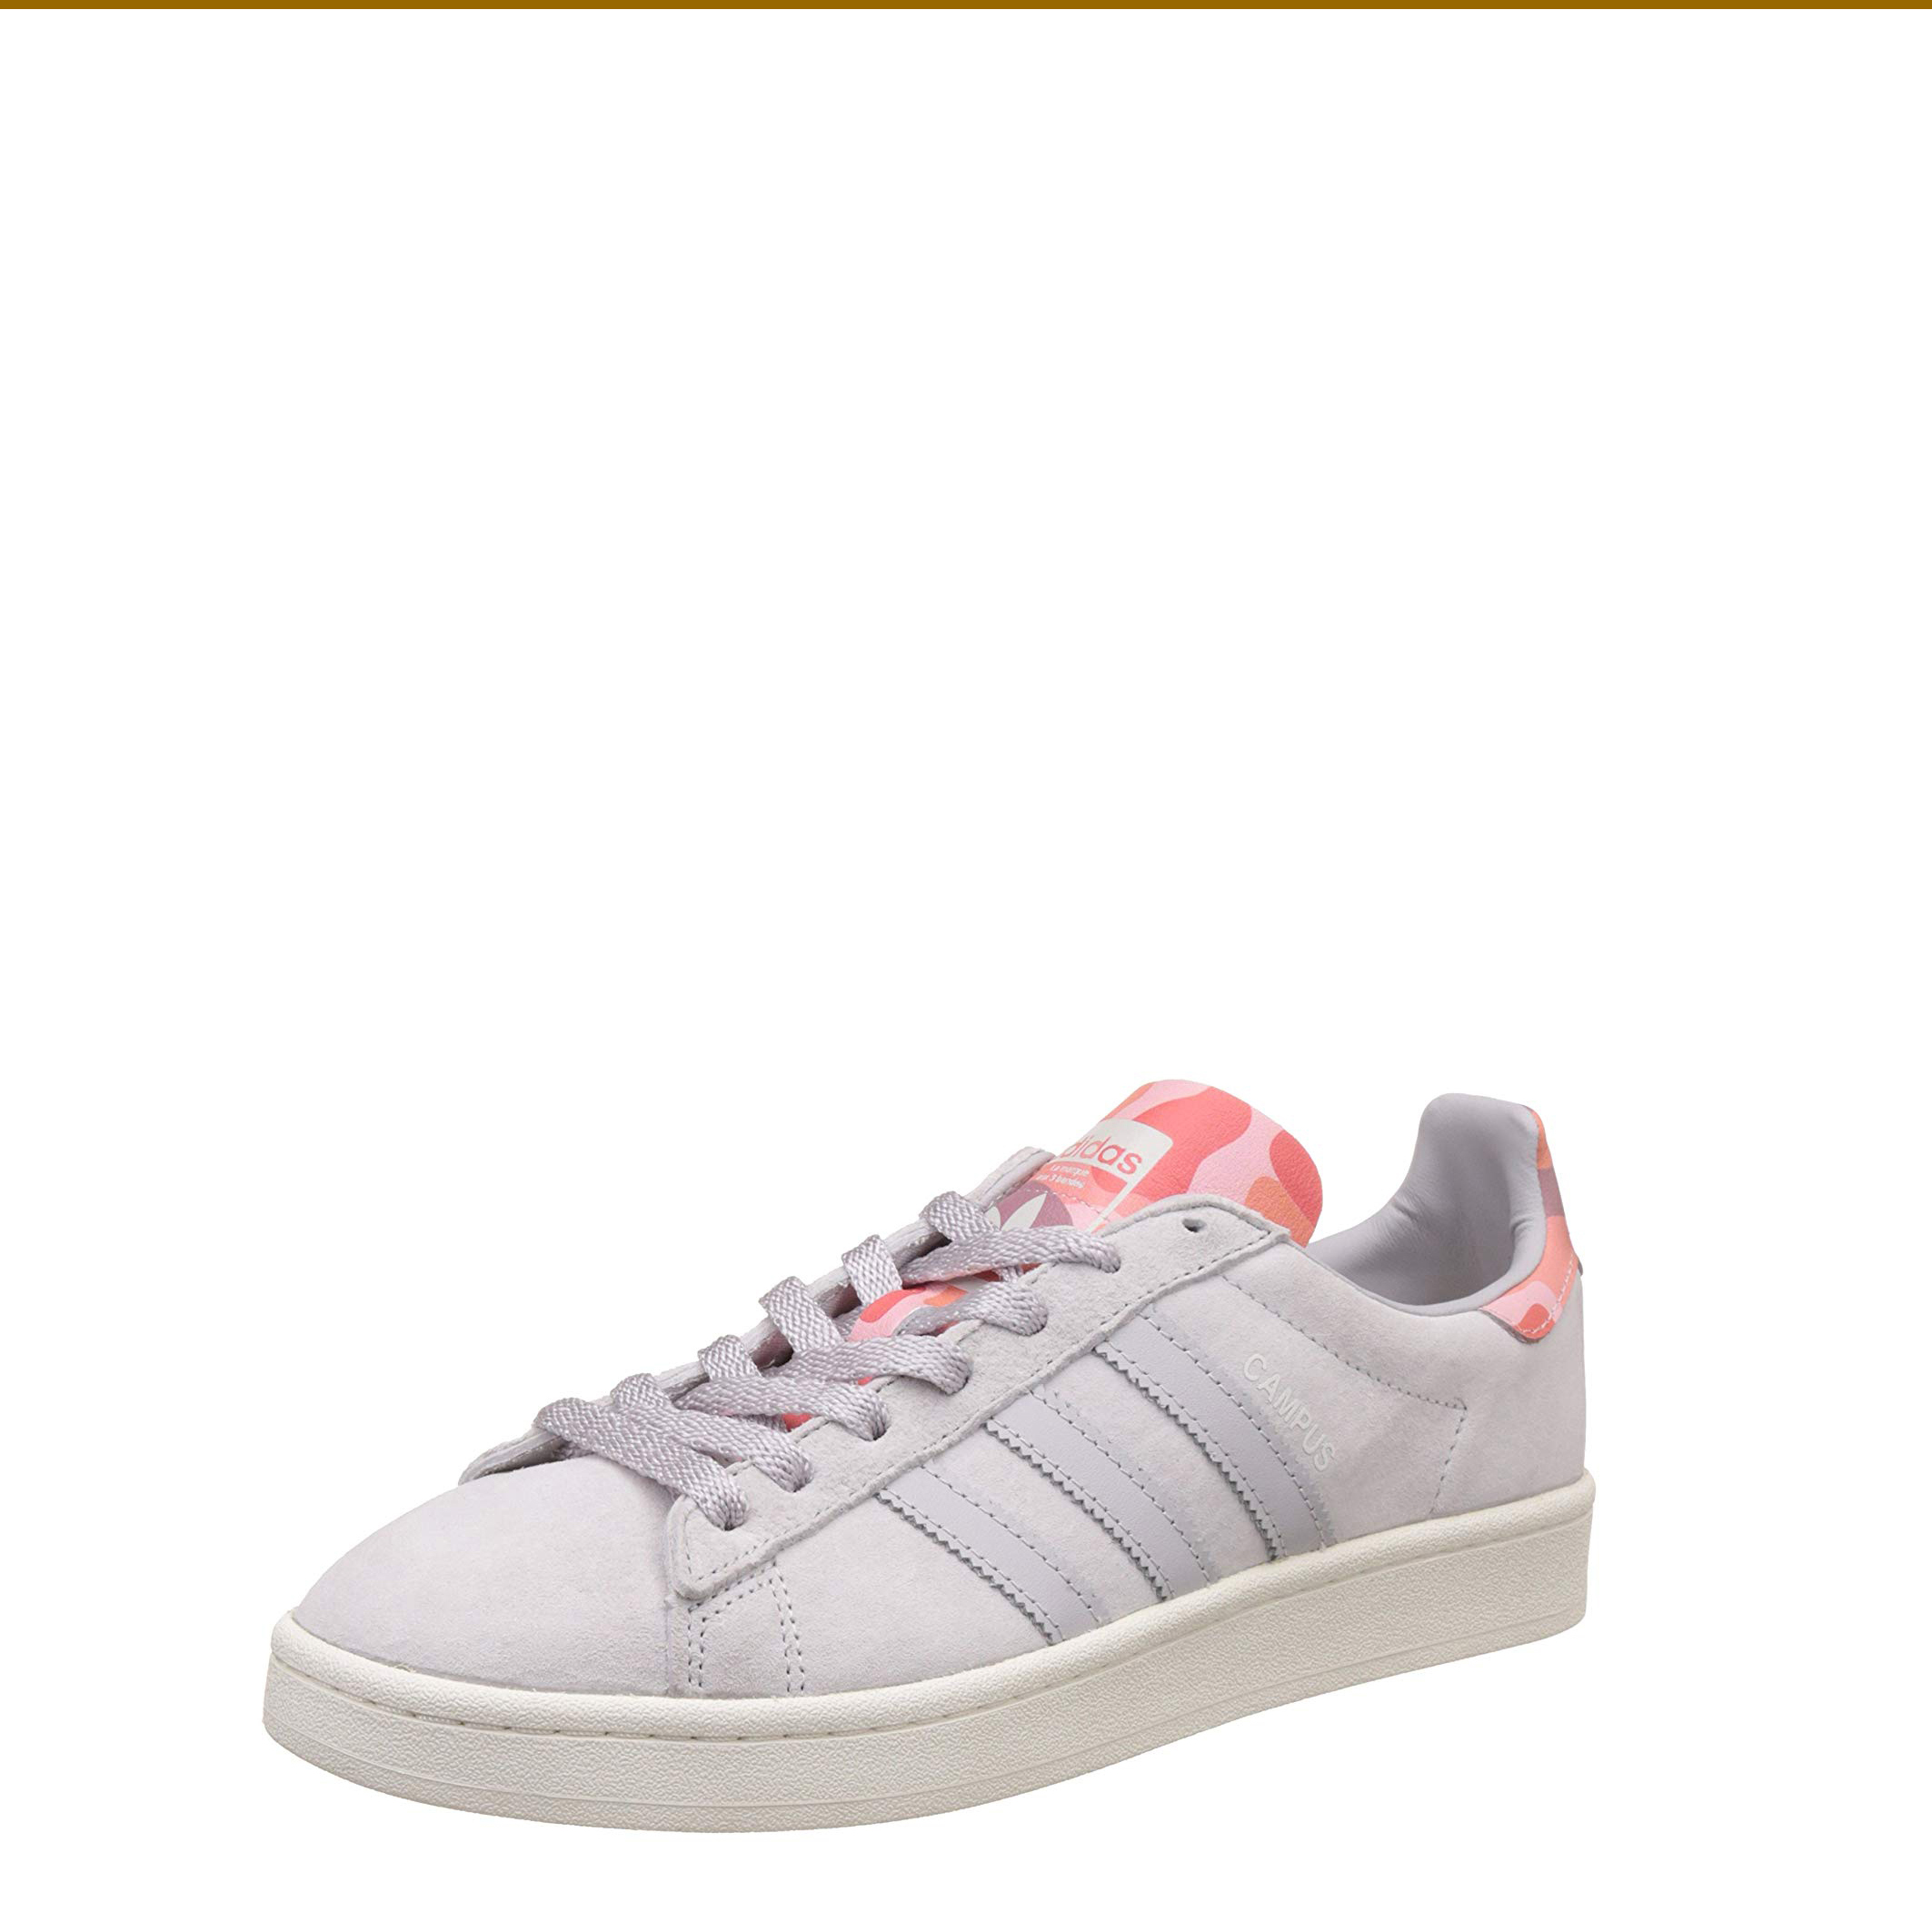 Chaussures   Adidas ADULTS_CAMPUS white